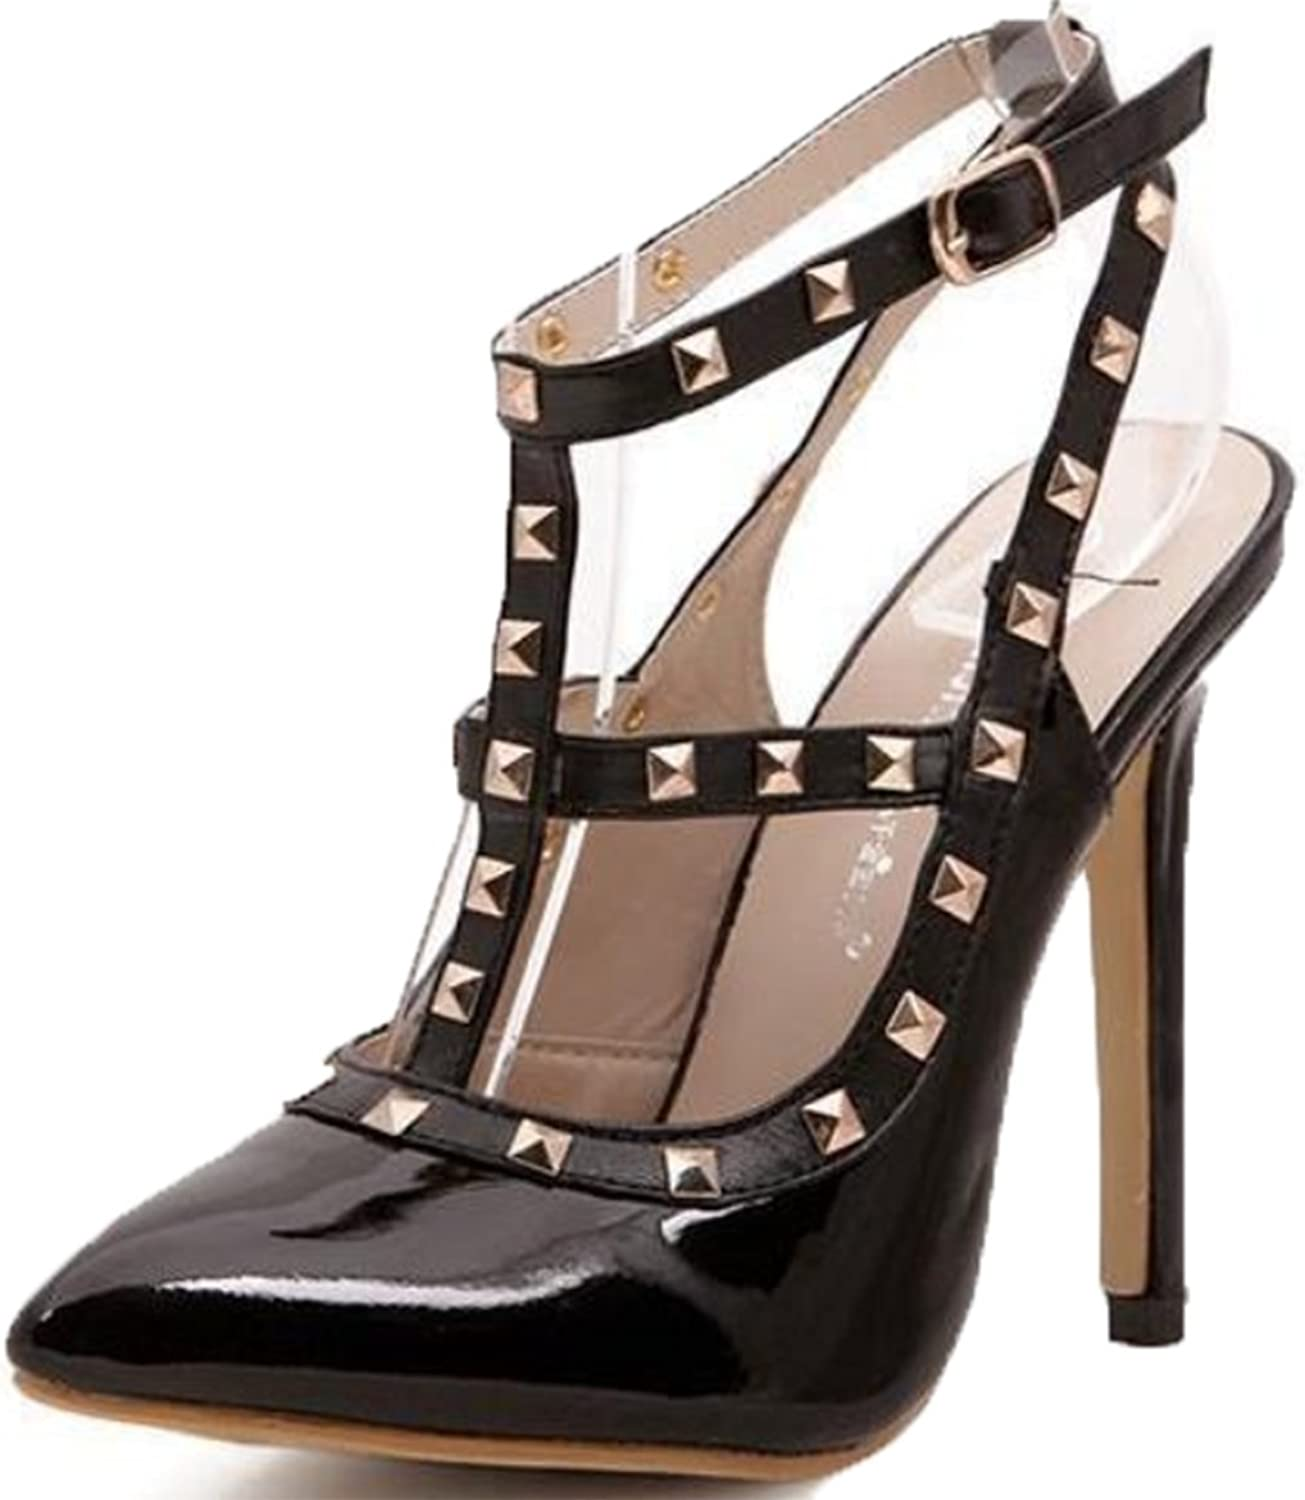 D2C Beauty Women's Studded Pointed Toe Ankle Strap Stiletto High Heel Pumps